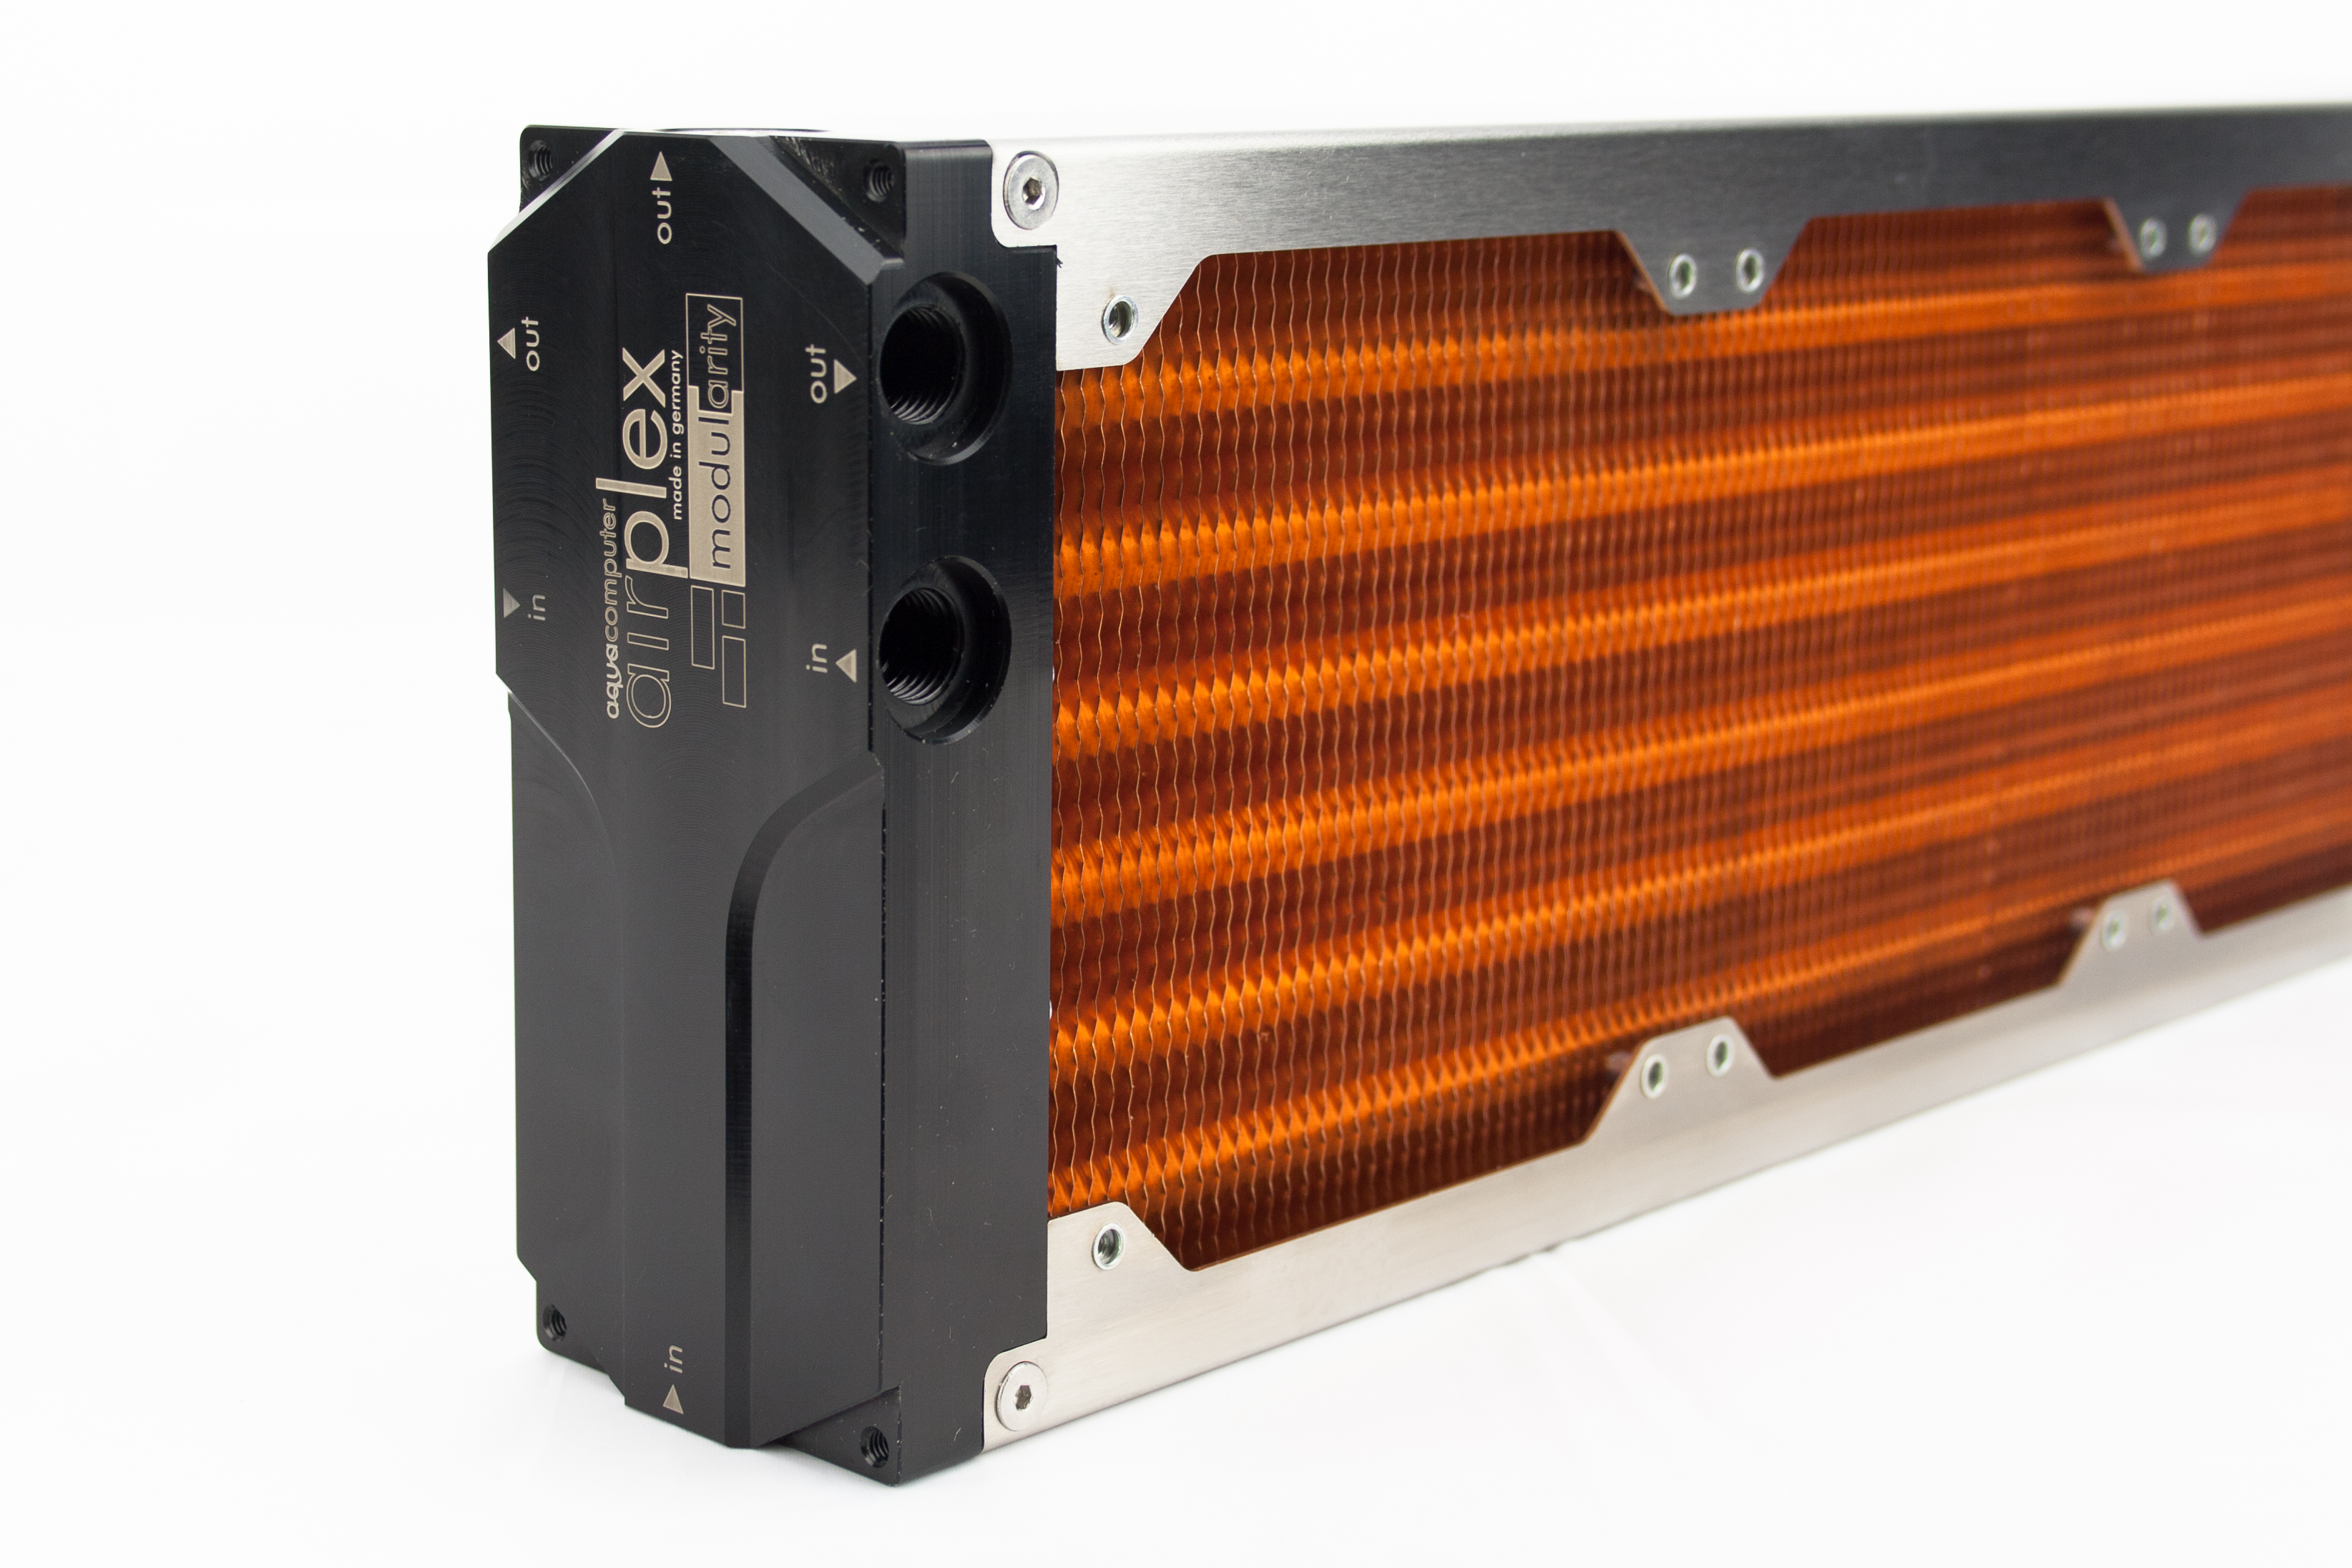 Aqua Computer AMS Copper 360mm Radiator Review - Page 6 of ...